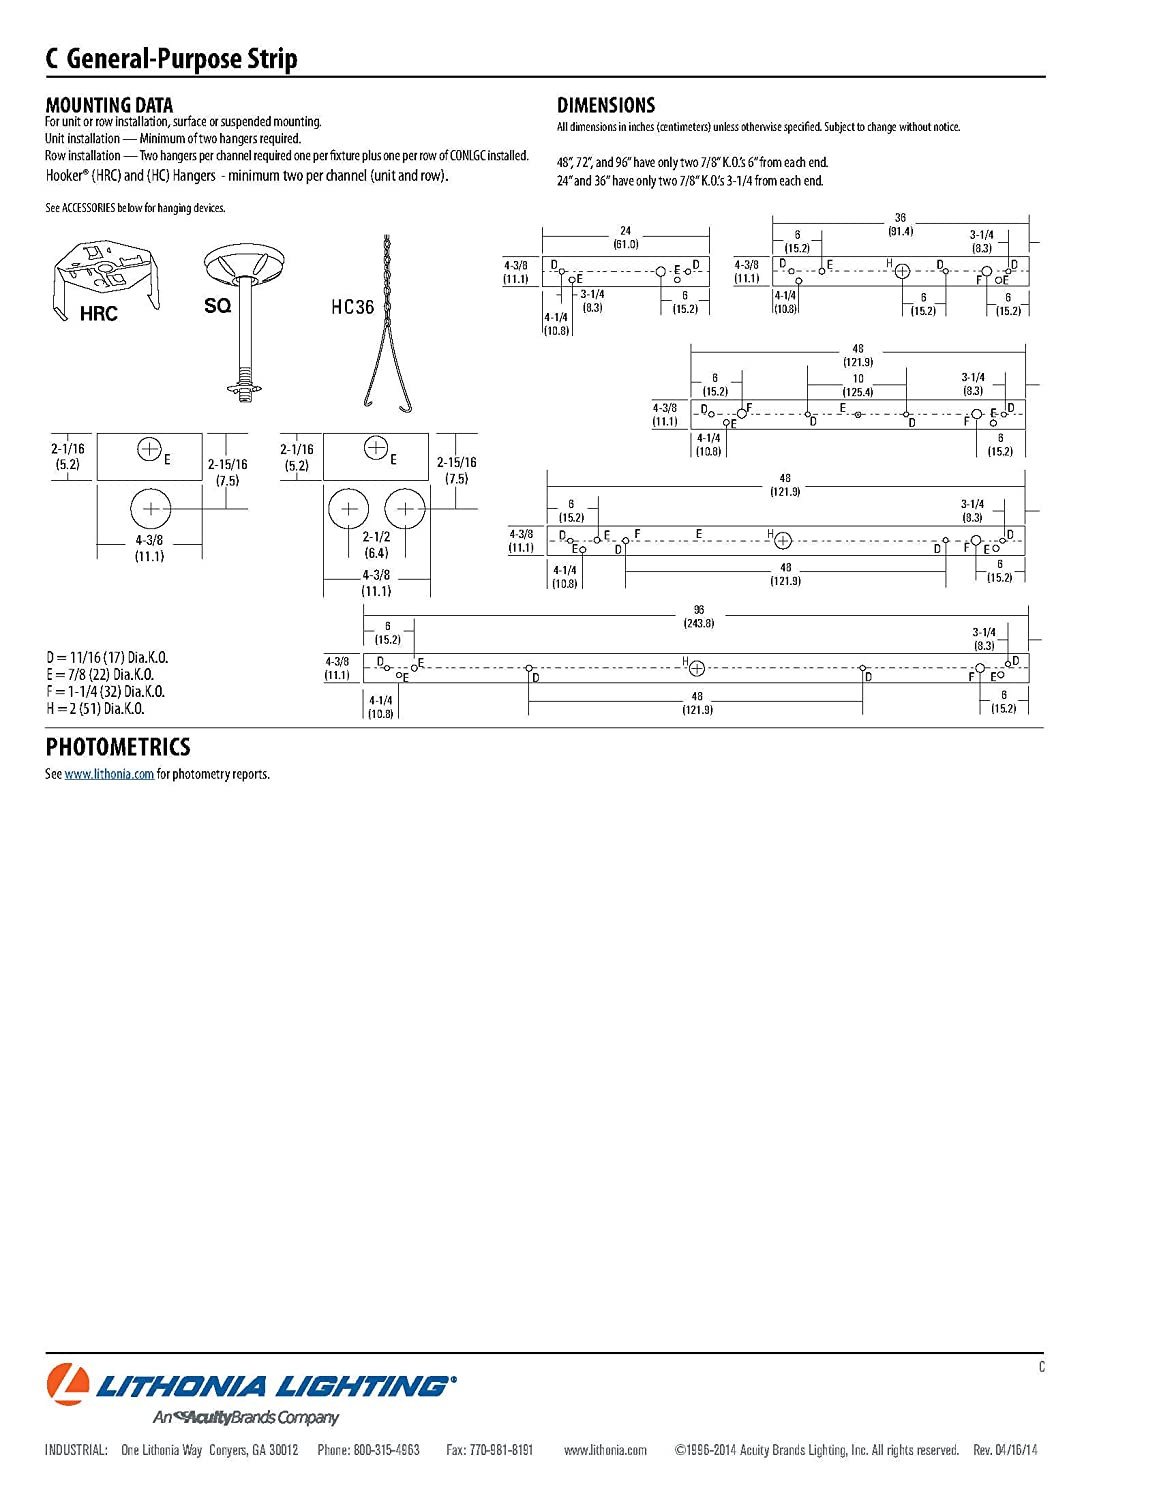 Lithonia Lighting Wiring Diagram T12 Trusted For T5 Lights C 240 120 Mbe 2inko 4 Foot 2 Light Fluorescent Rh Amazon Ca Bodine B50 Emergency Ballast Electronic Wire